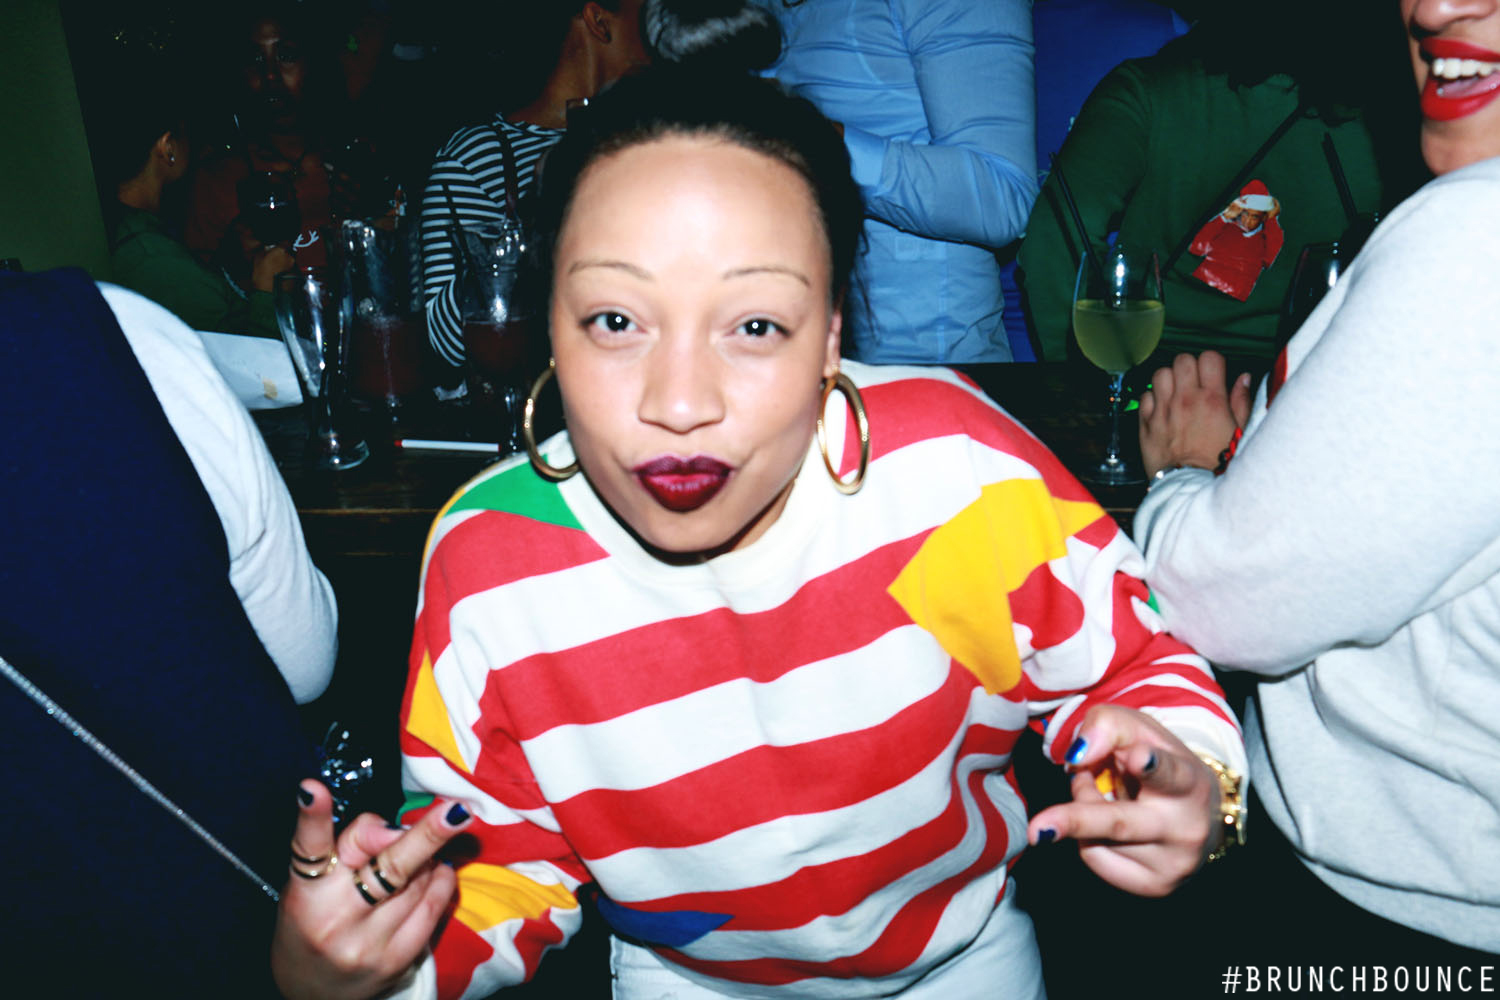 brunchbounce-ugly-christmas-sweater-party-122014_15896983627_o.jpg